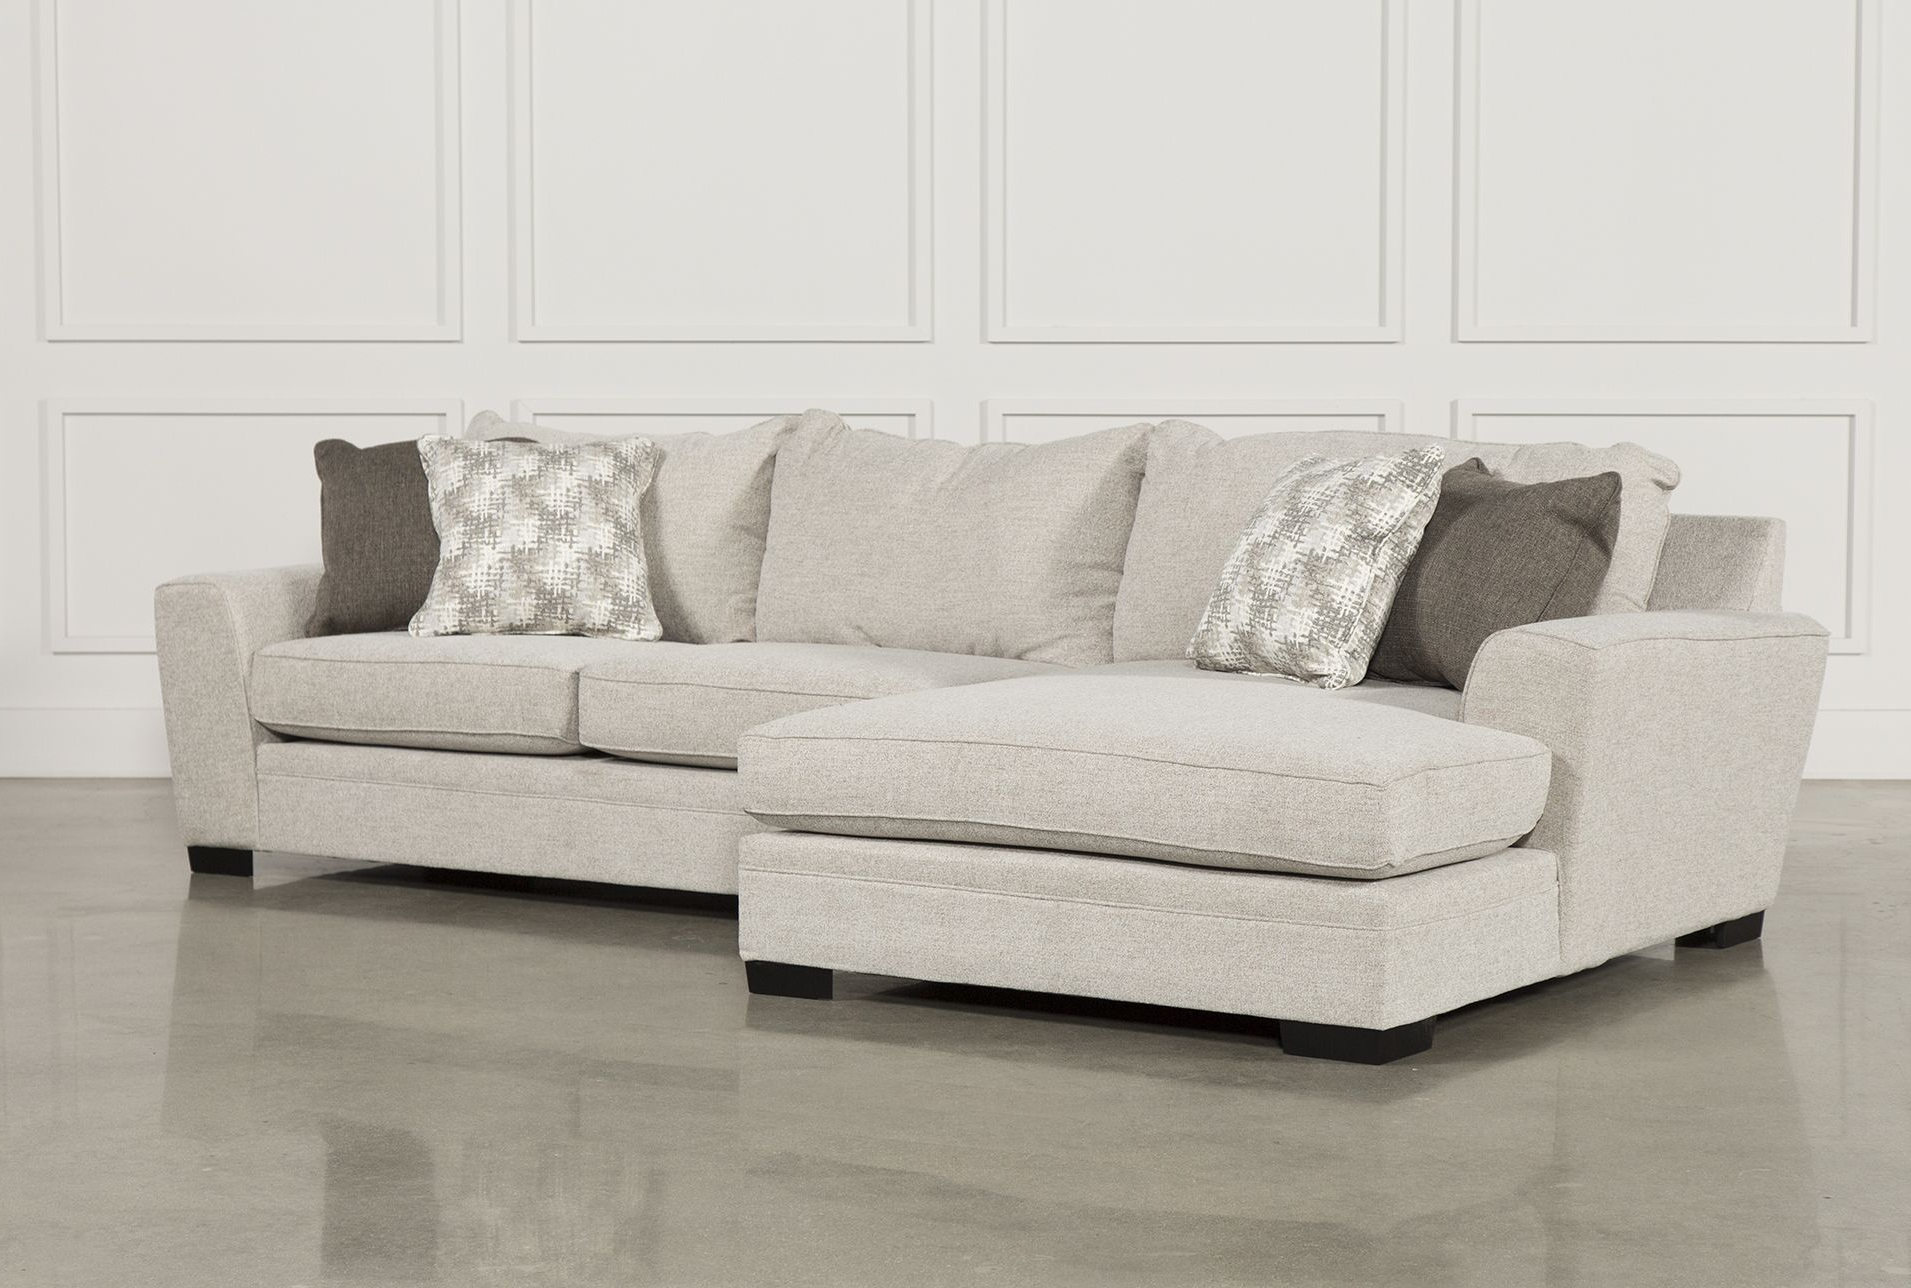 Arrowmask 2 Piece Sectionals With Laf Chaise In Newest Delano 2 Piece Sectional W/laf Oversized Chaise Living Spaces (Gallery 10 of 20)